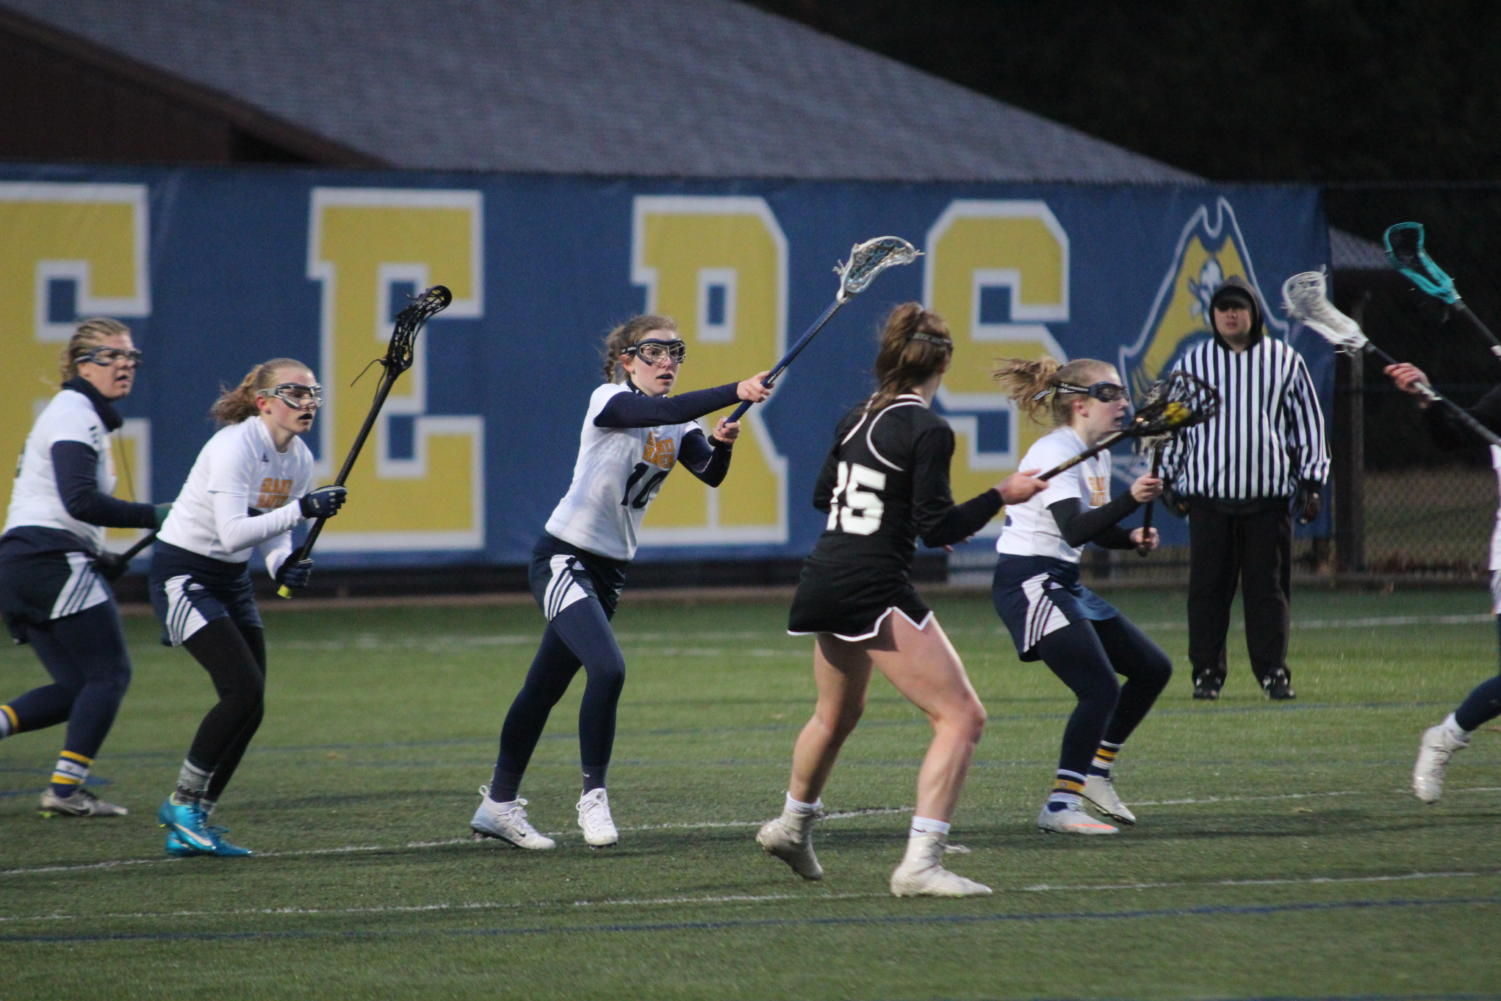 The Lady Bucs defense shuts down the opposing offense's charge into their third of the field. Led by senior Alexis Nesbitt (center) the Bucs stunted this attack